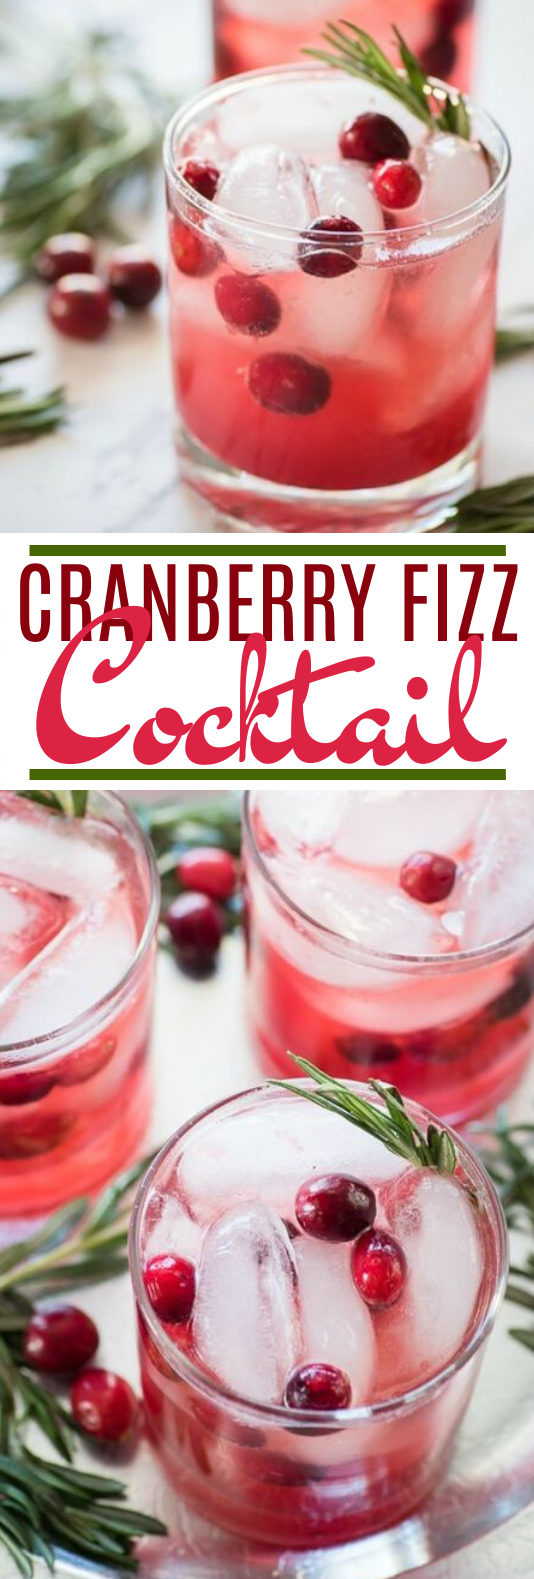 Cranberry Fizz Cocktail #drinks #alcohol #cocktails #christmas #punch